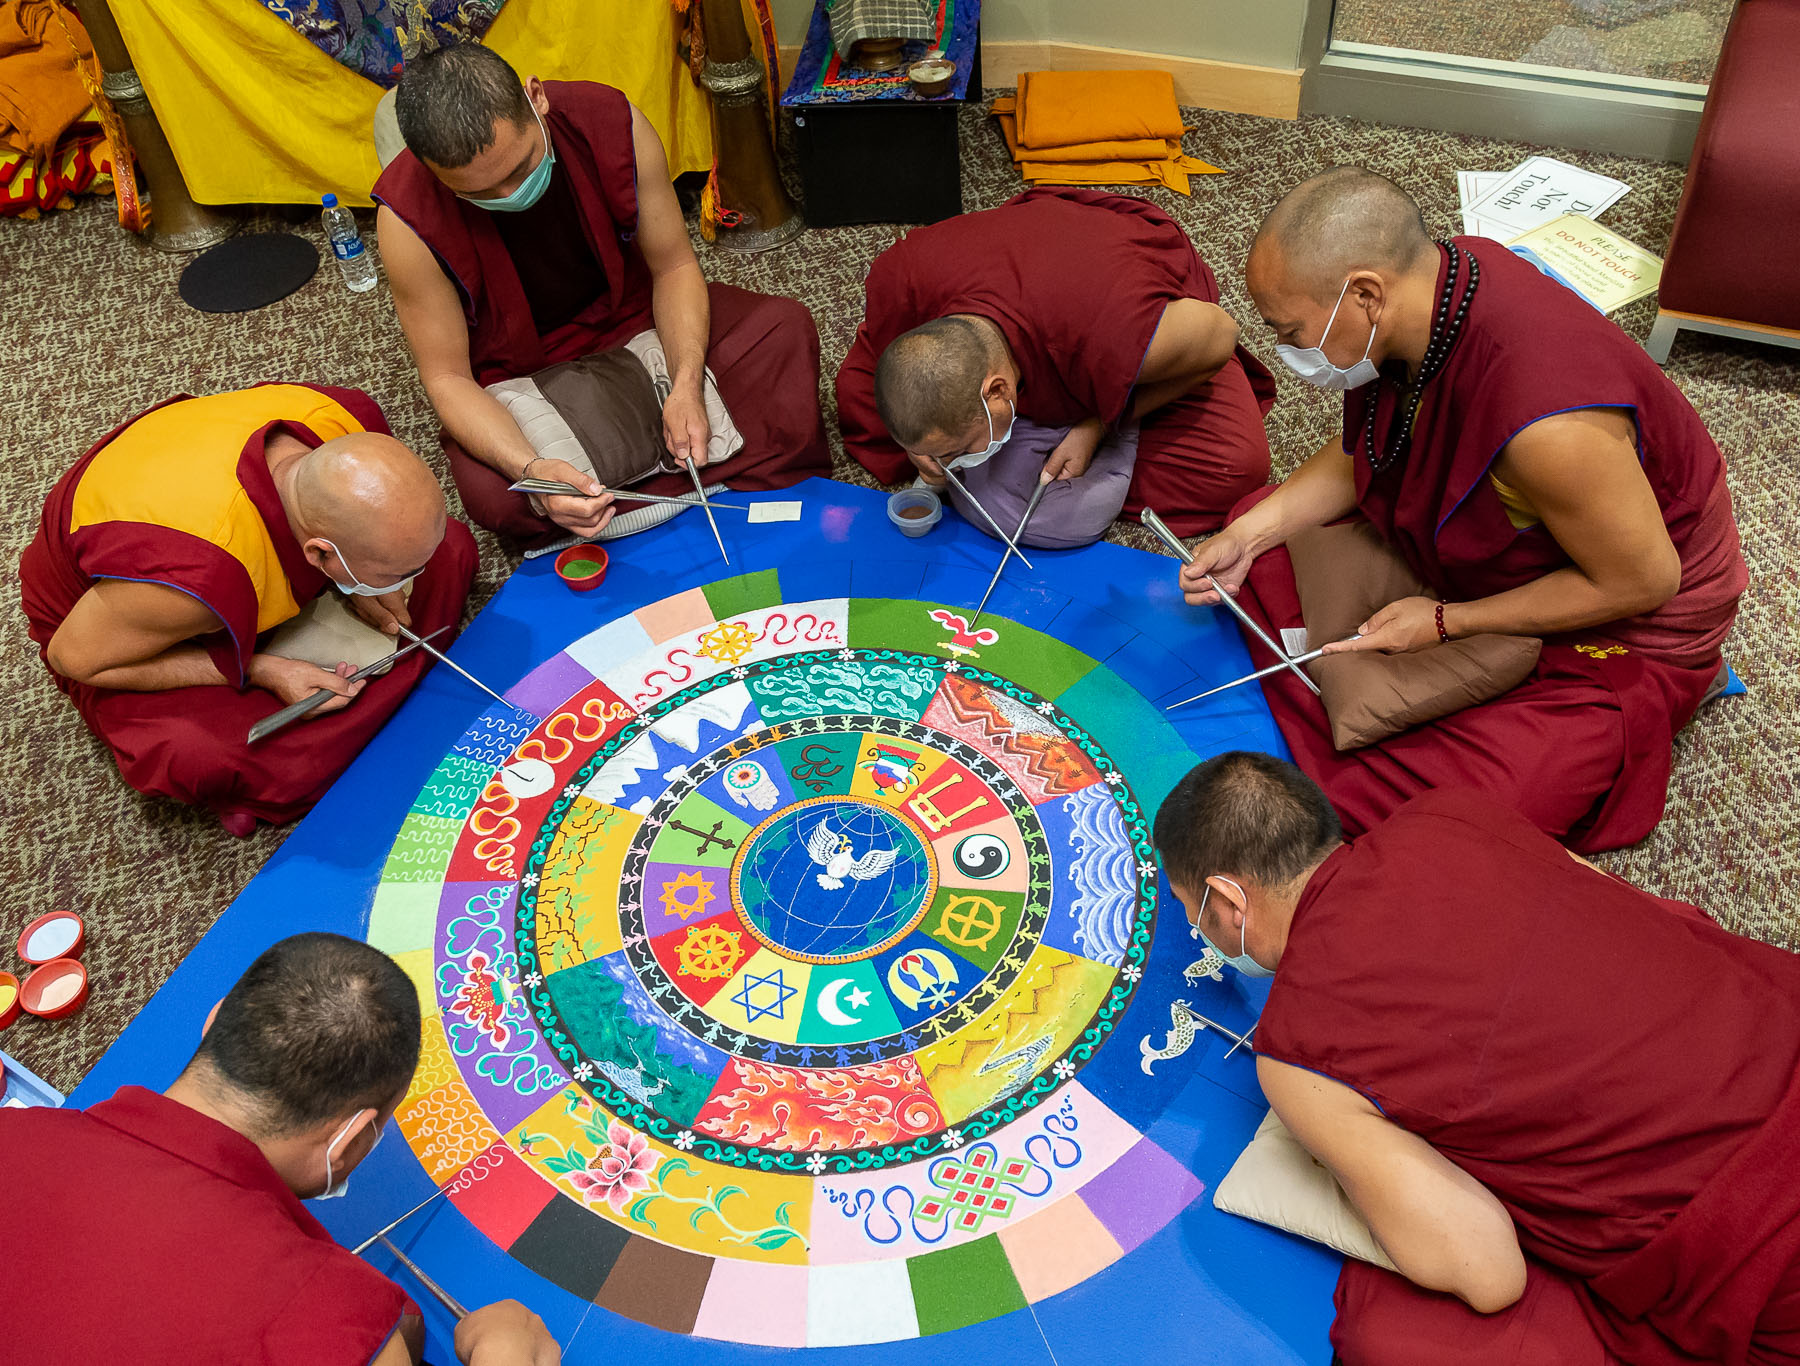 After five days of slow, meticulous progress, several monks work together to finish the mandala on Friday. (DePaul University/Jeff Carrion)